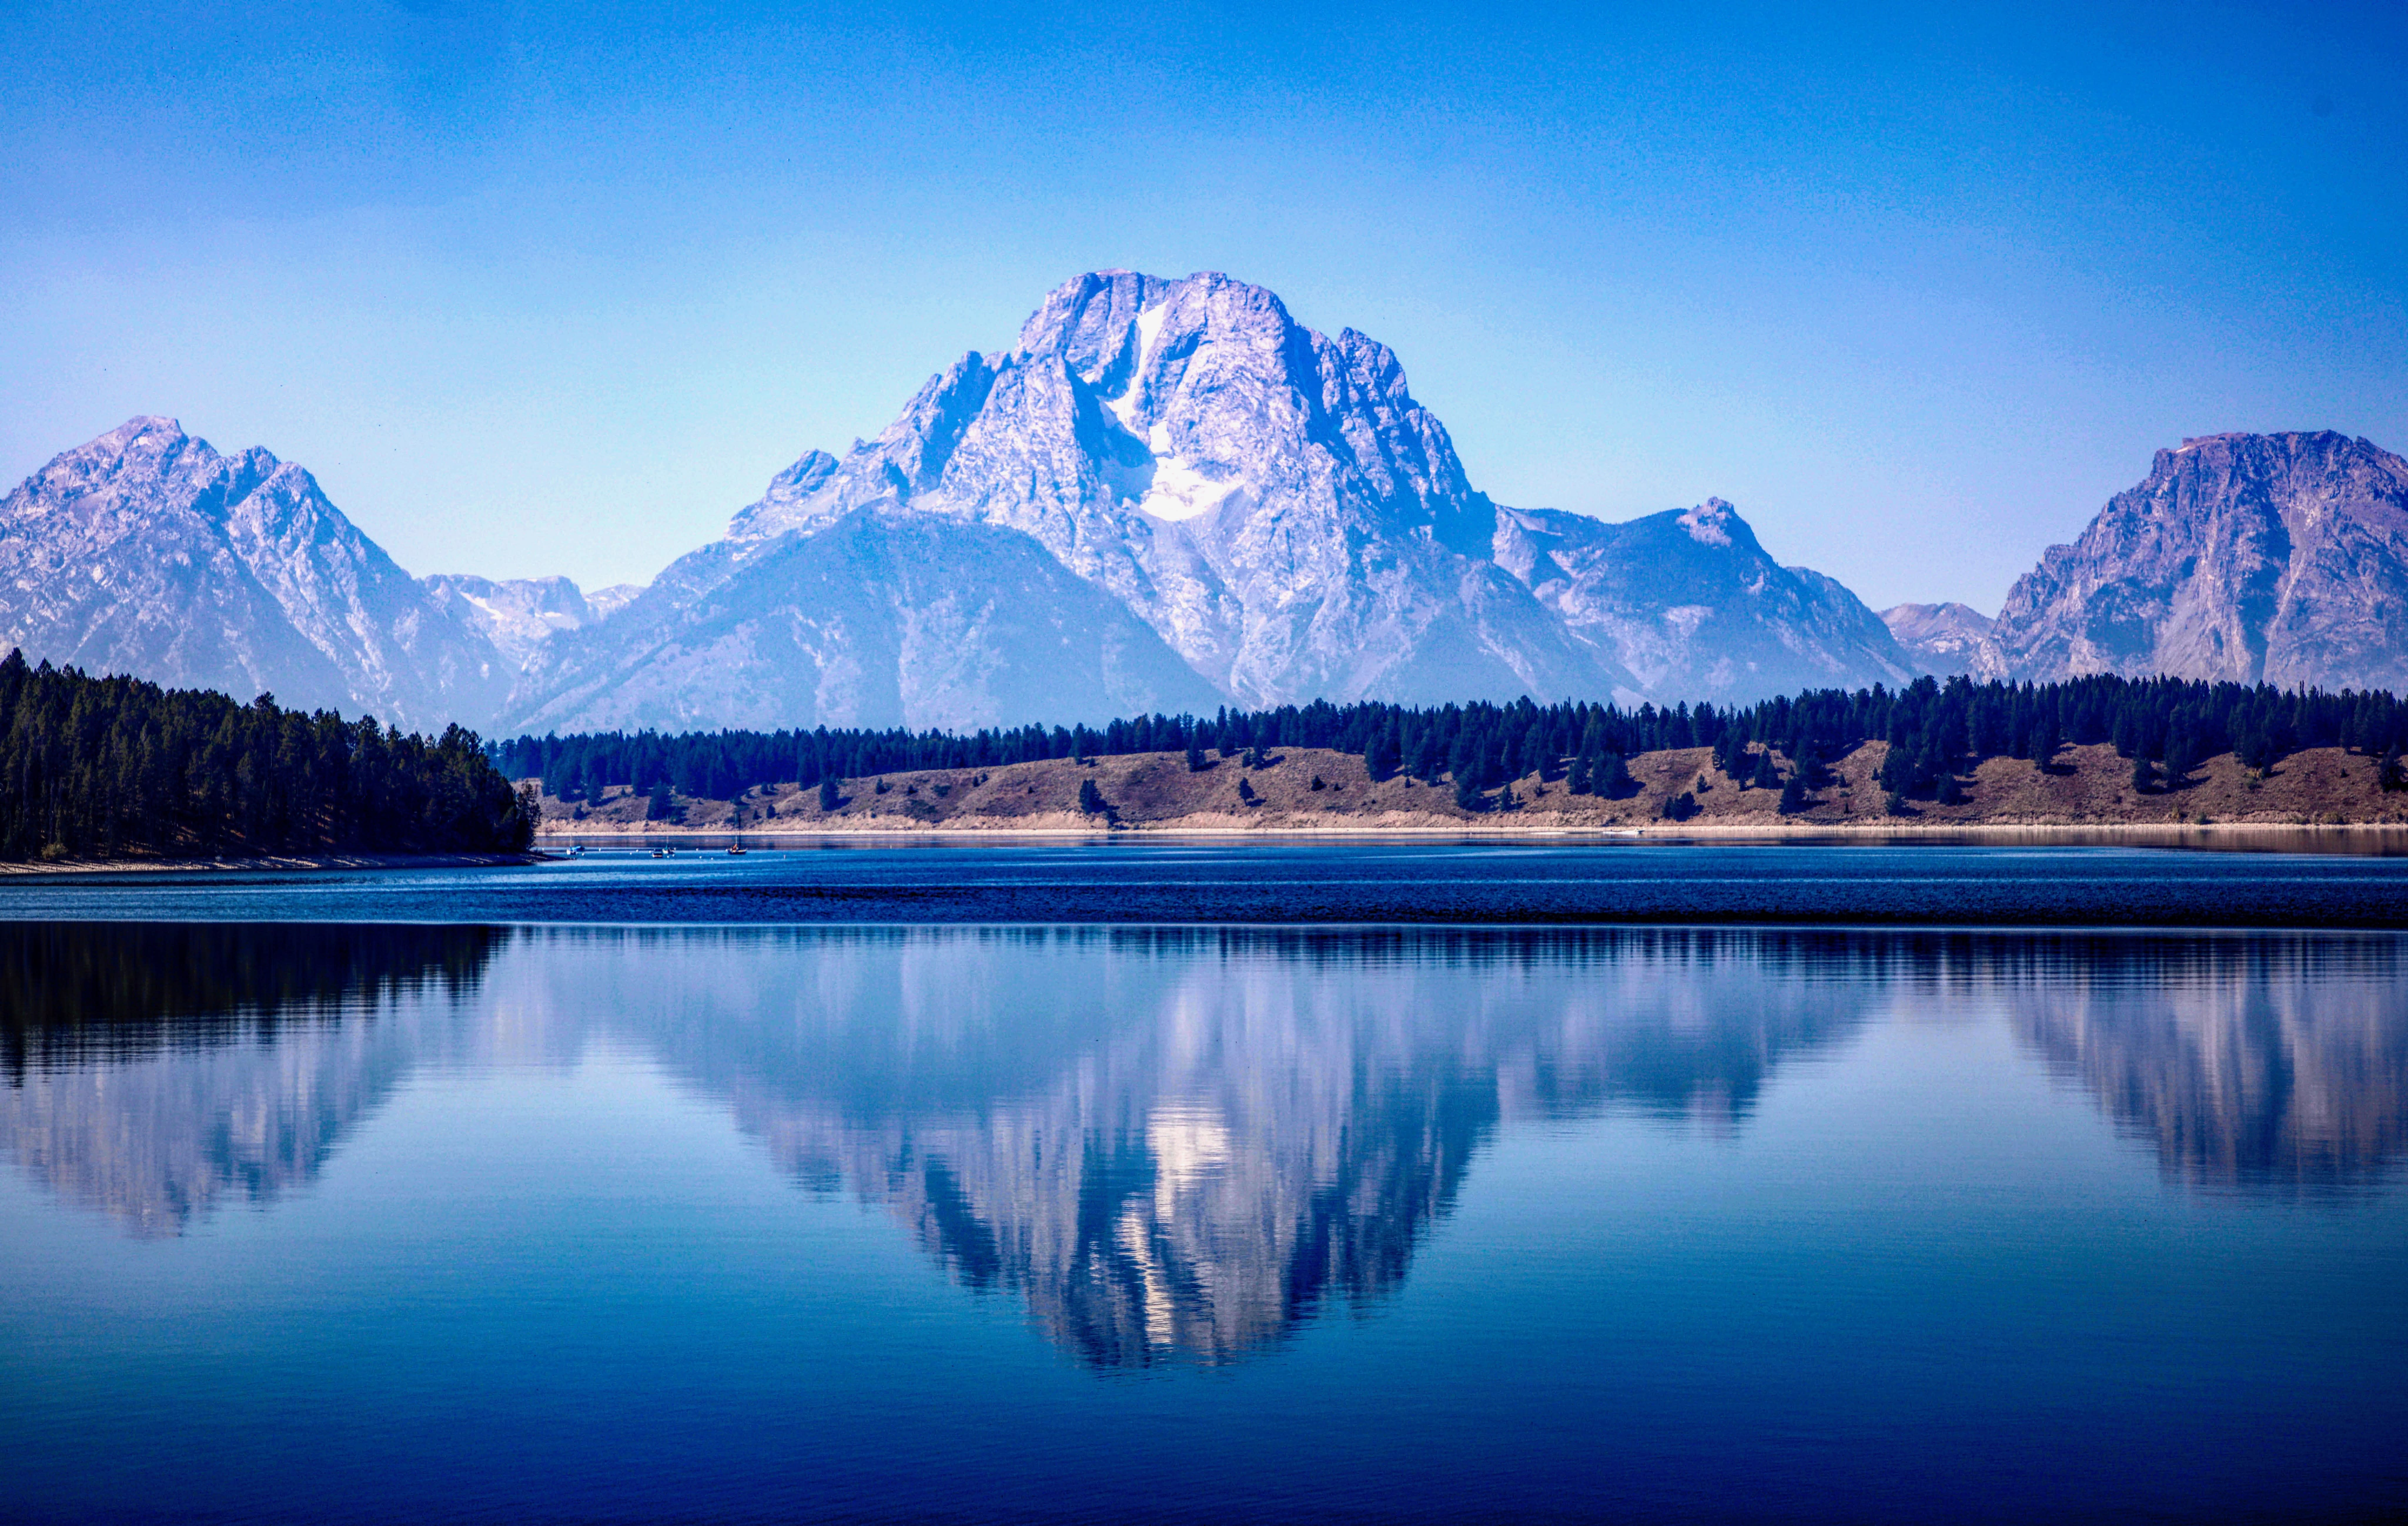 Mountains at Grand Teton, Wyoming